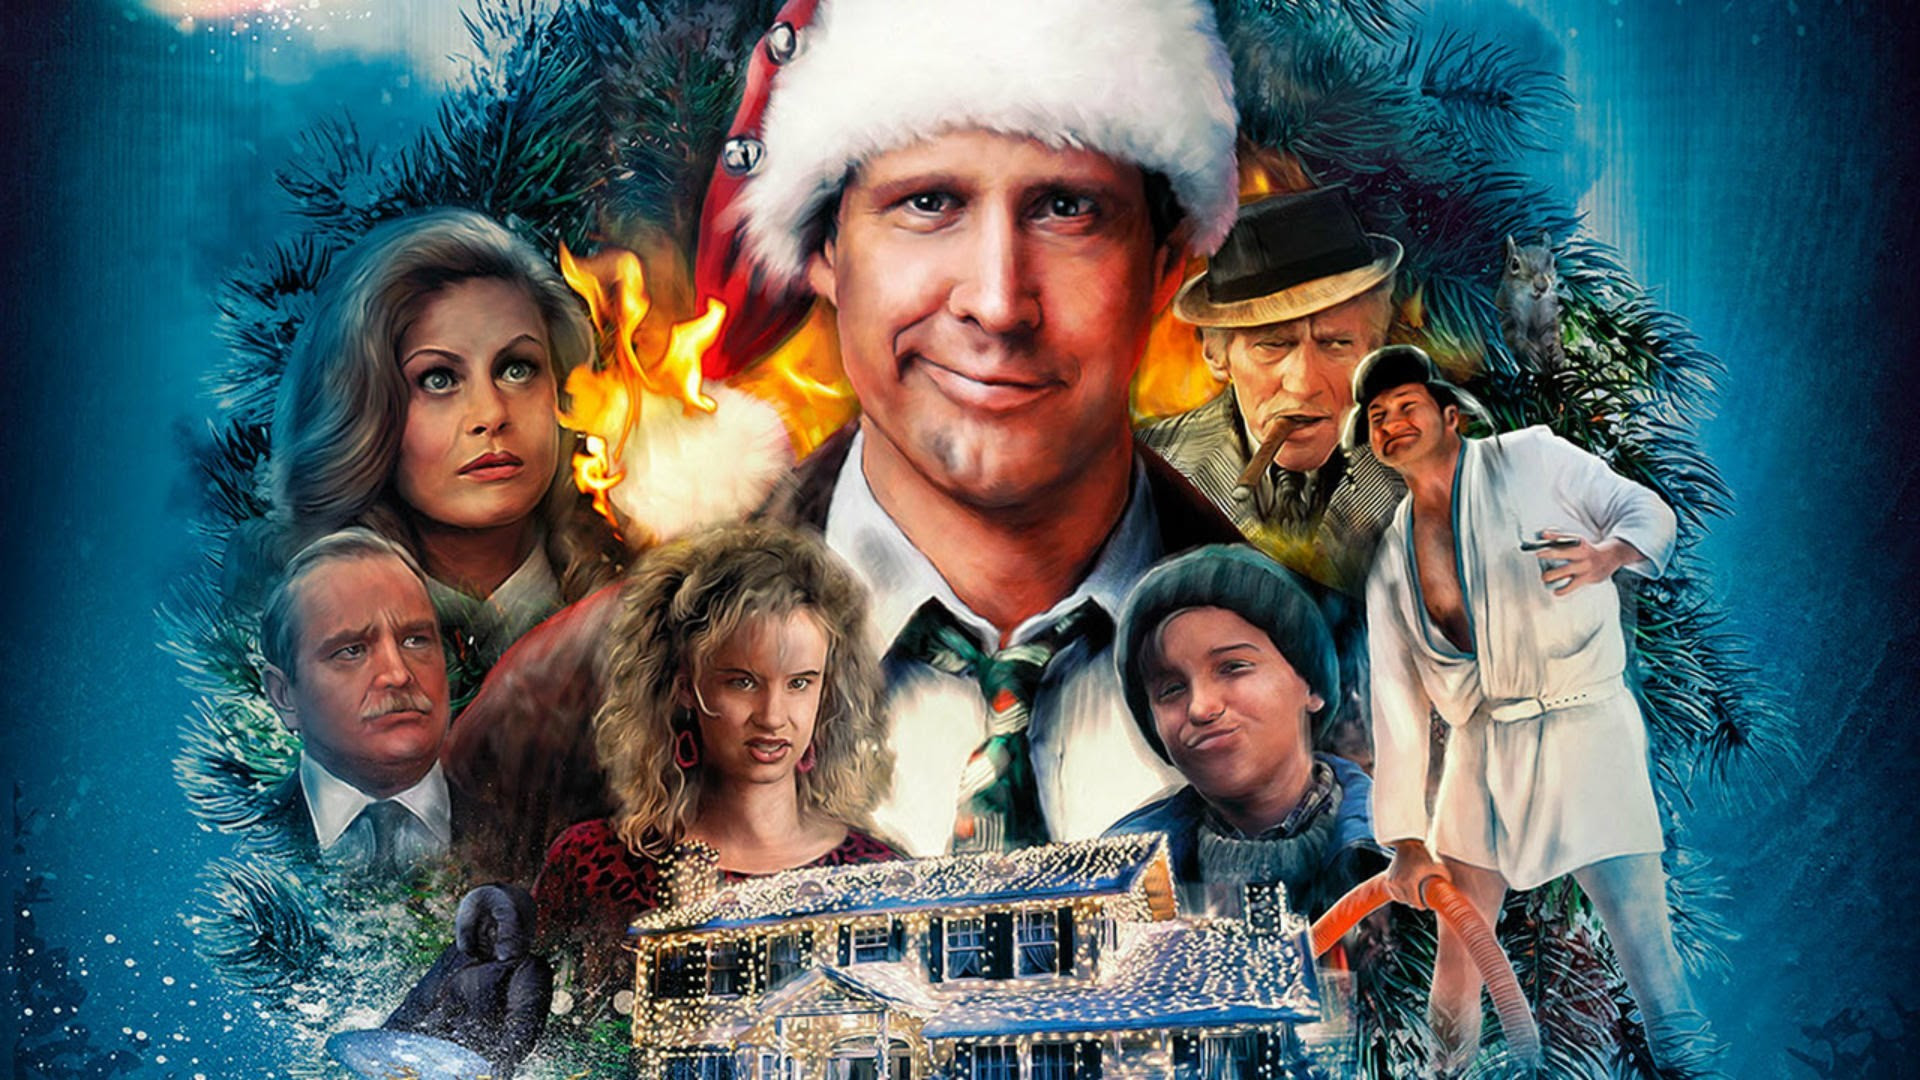 National Lampoons Christmas Vacation Wallpaper 78 images